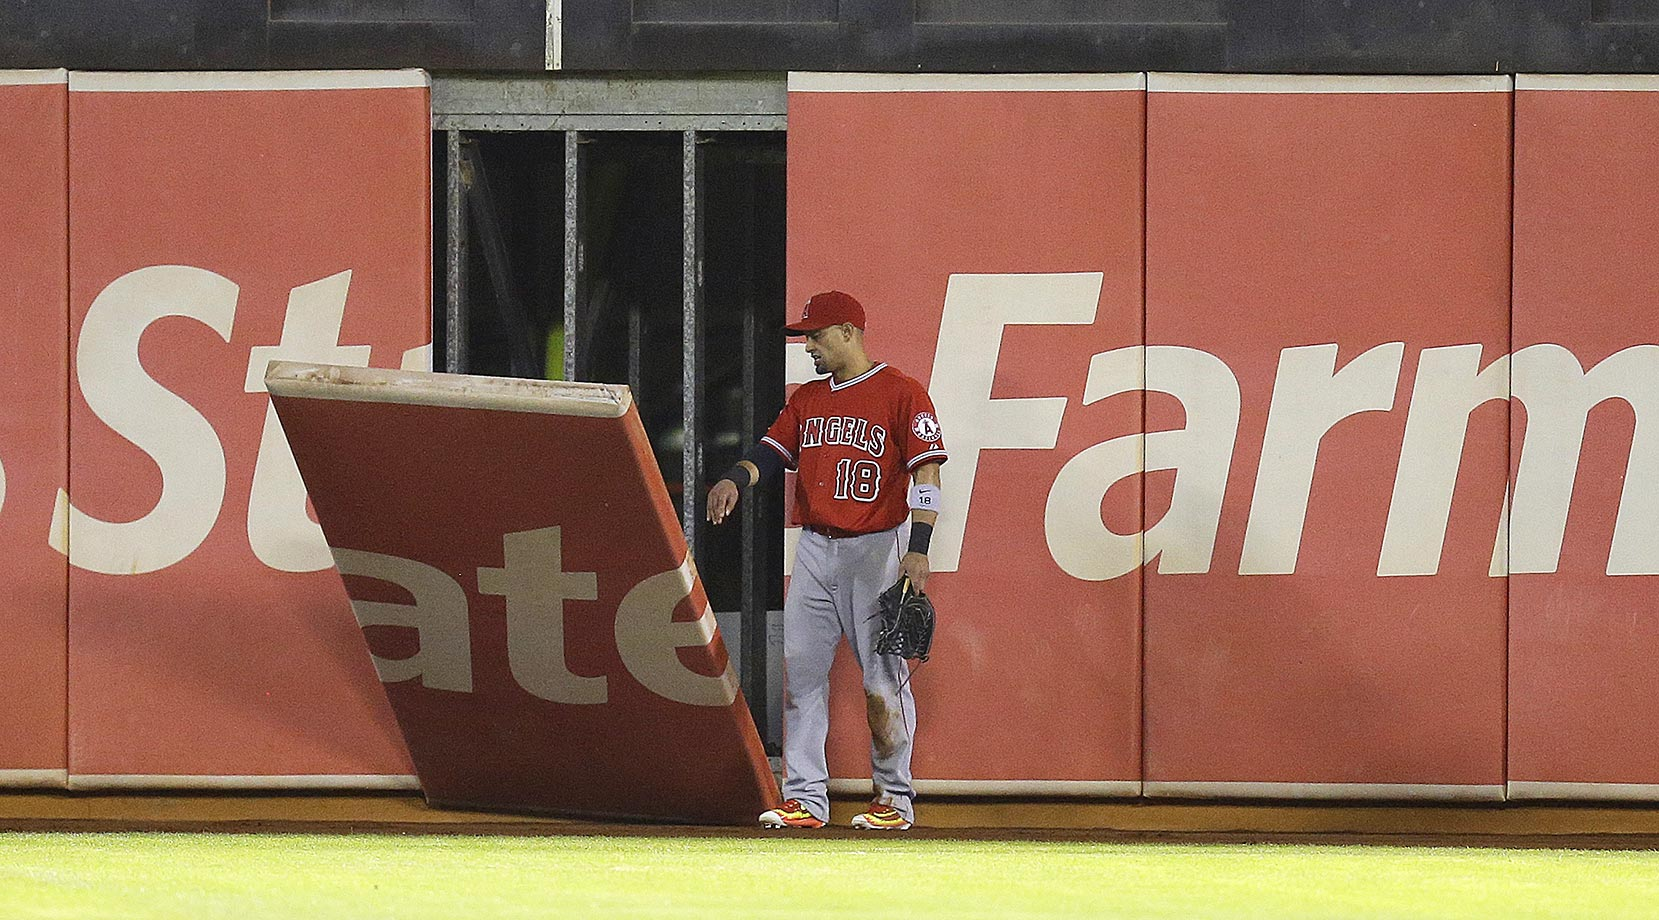 Shane Victorino of the Los Angeles Angels watches a piece of the leftfield wall fall off after he ran into it while trying to field a ball.